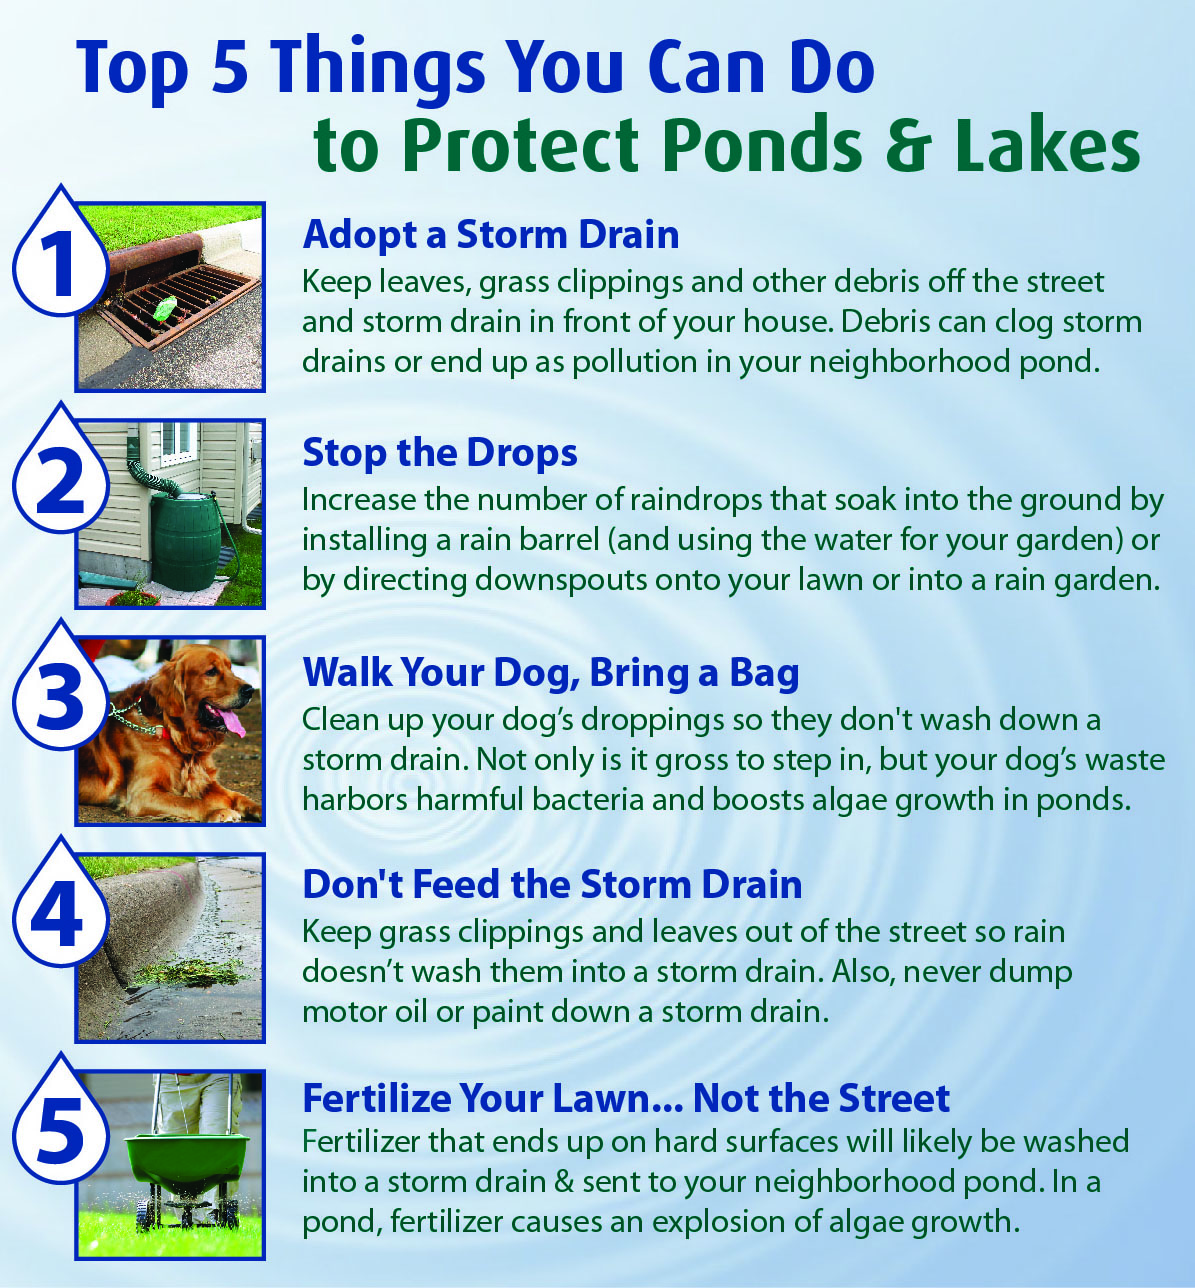 Top 5 Things for Lakes Ponds